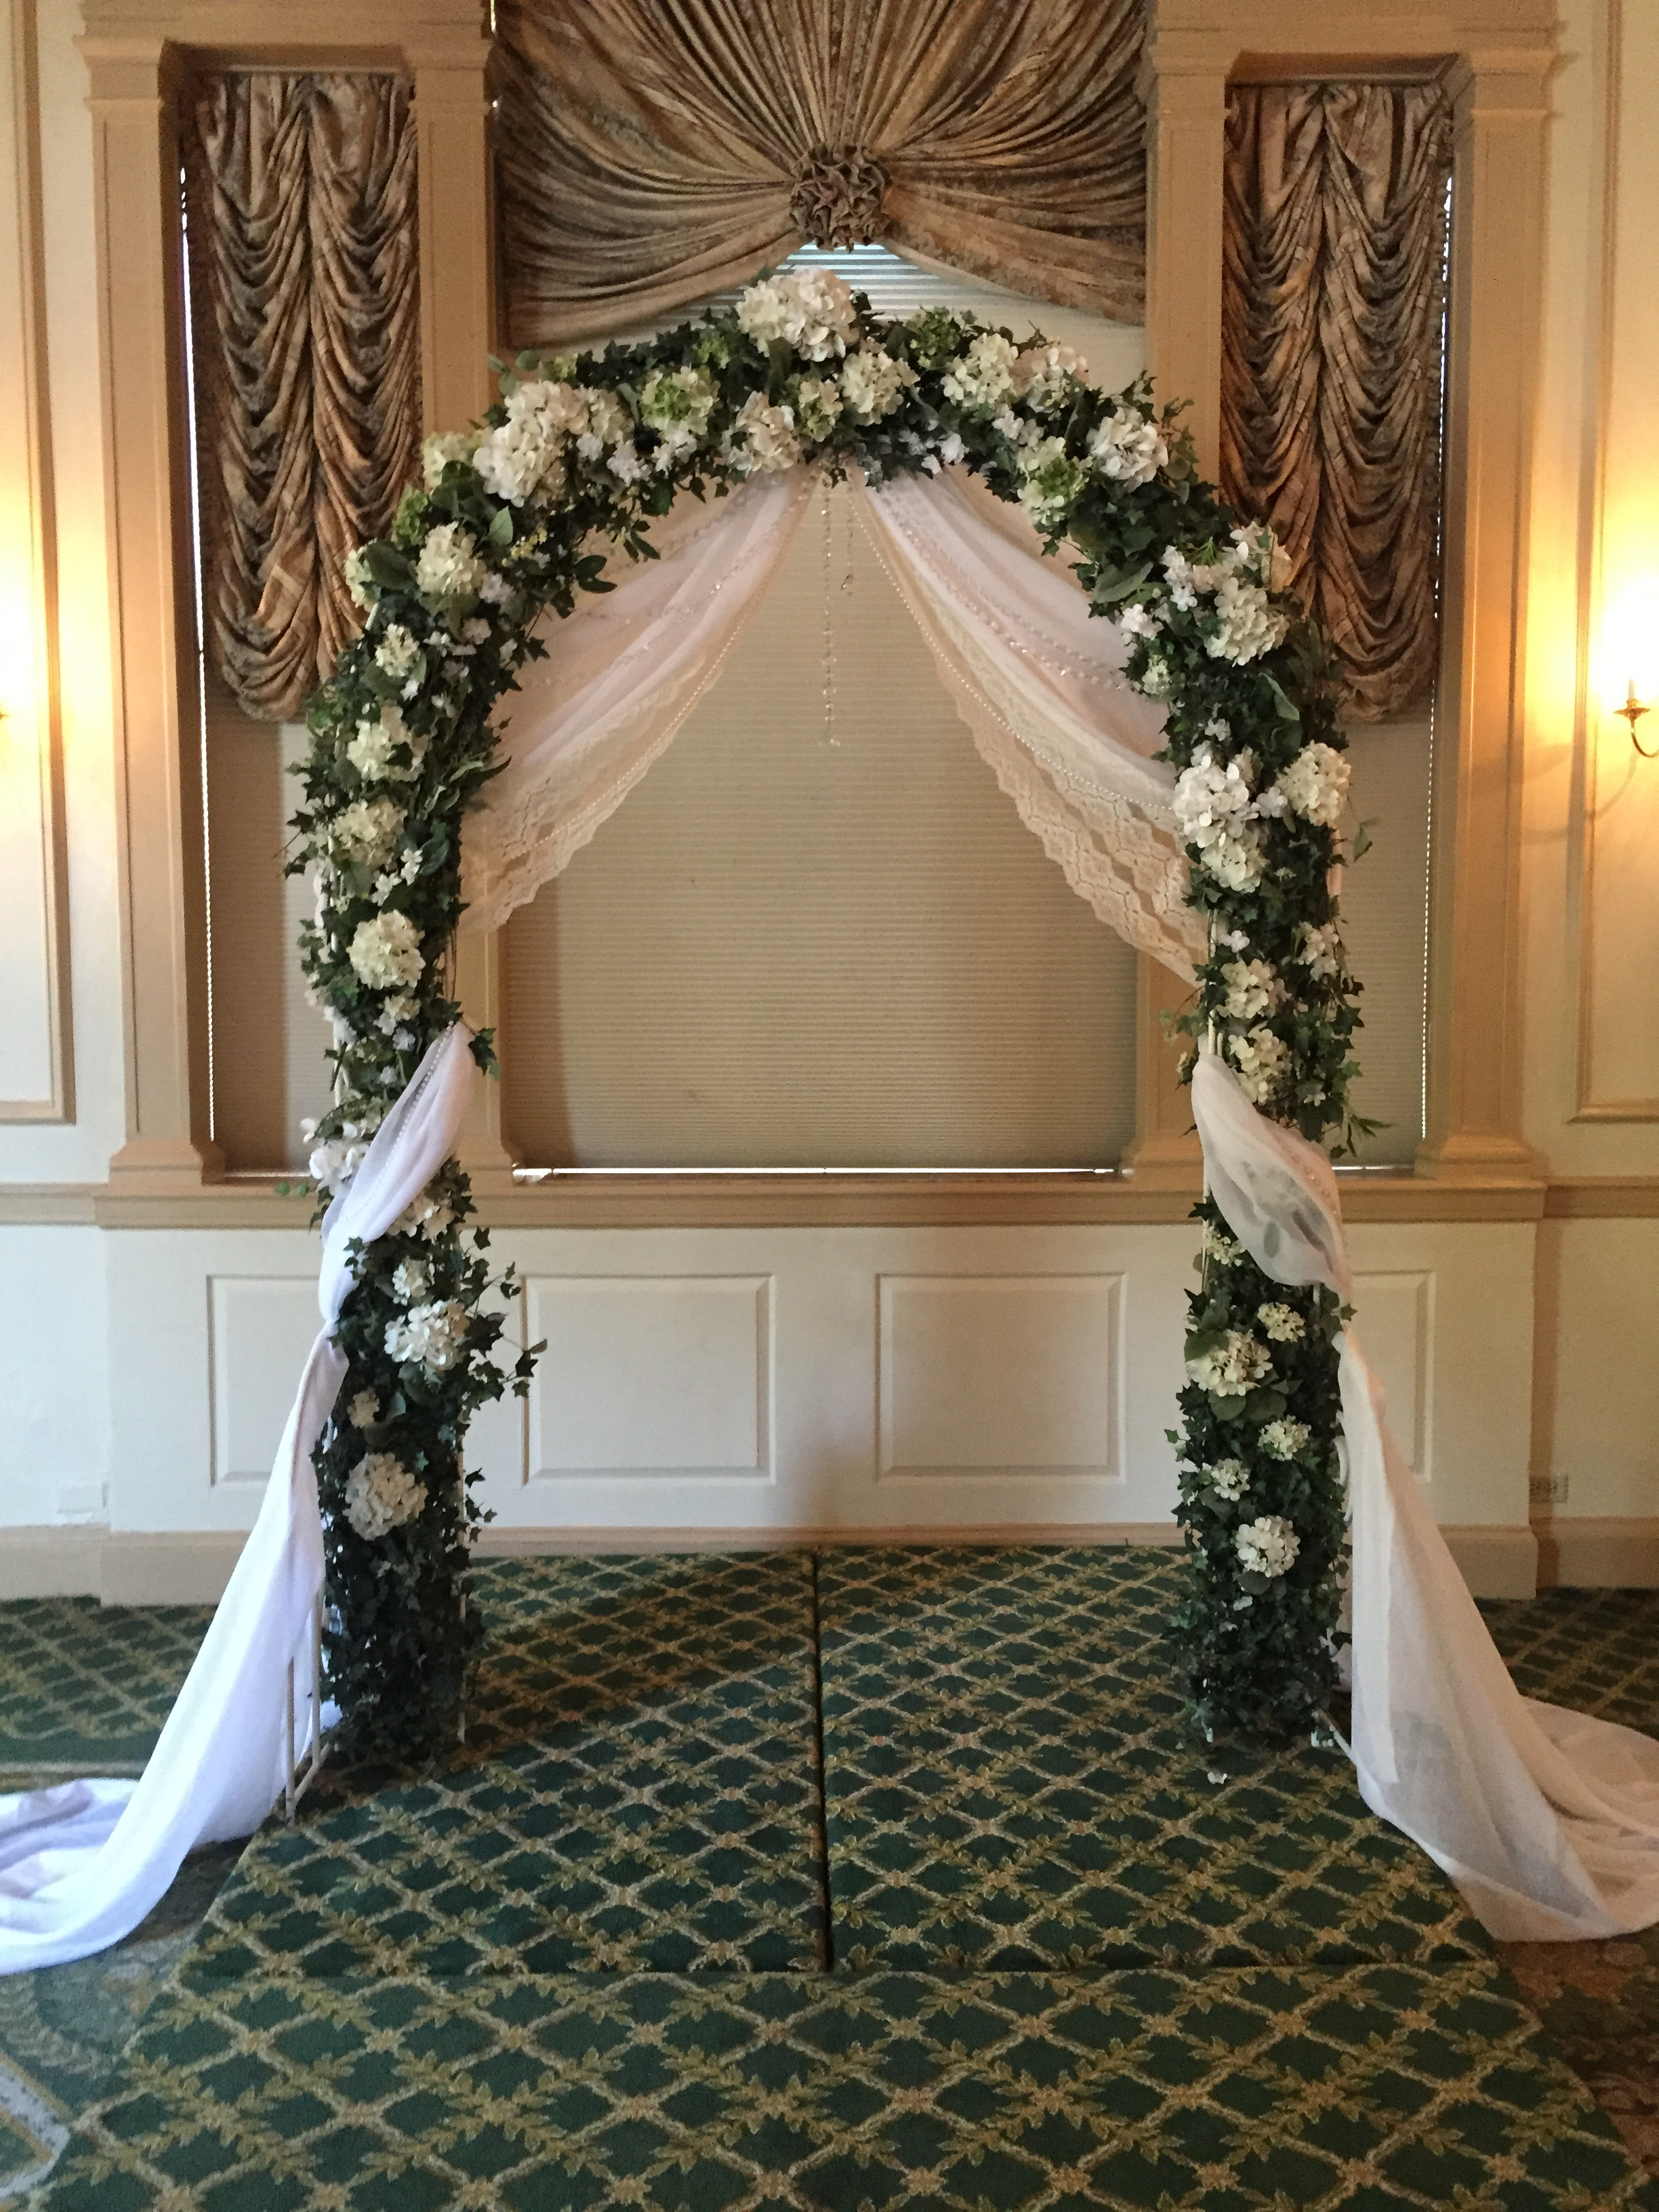 Silk Archway with Fabric